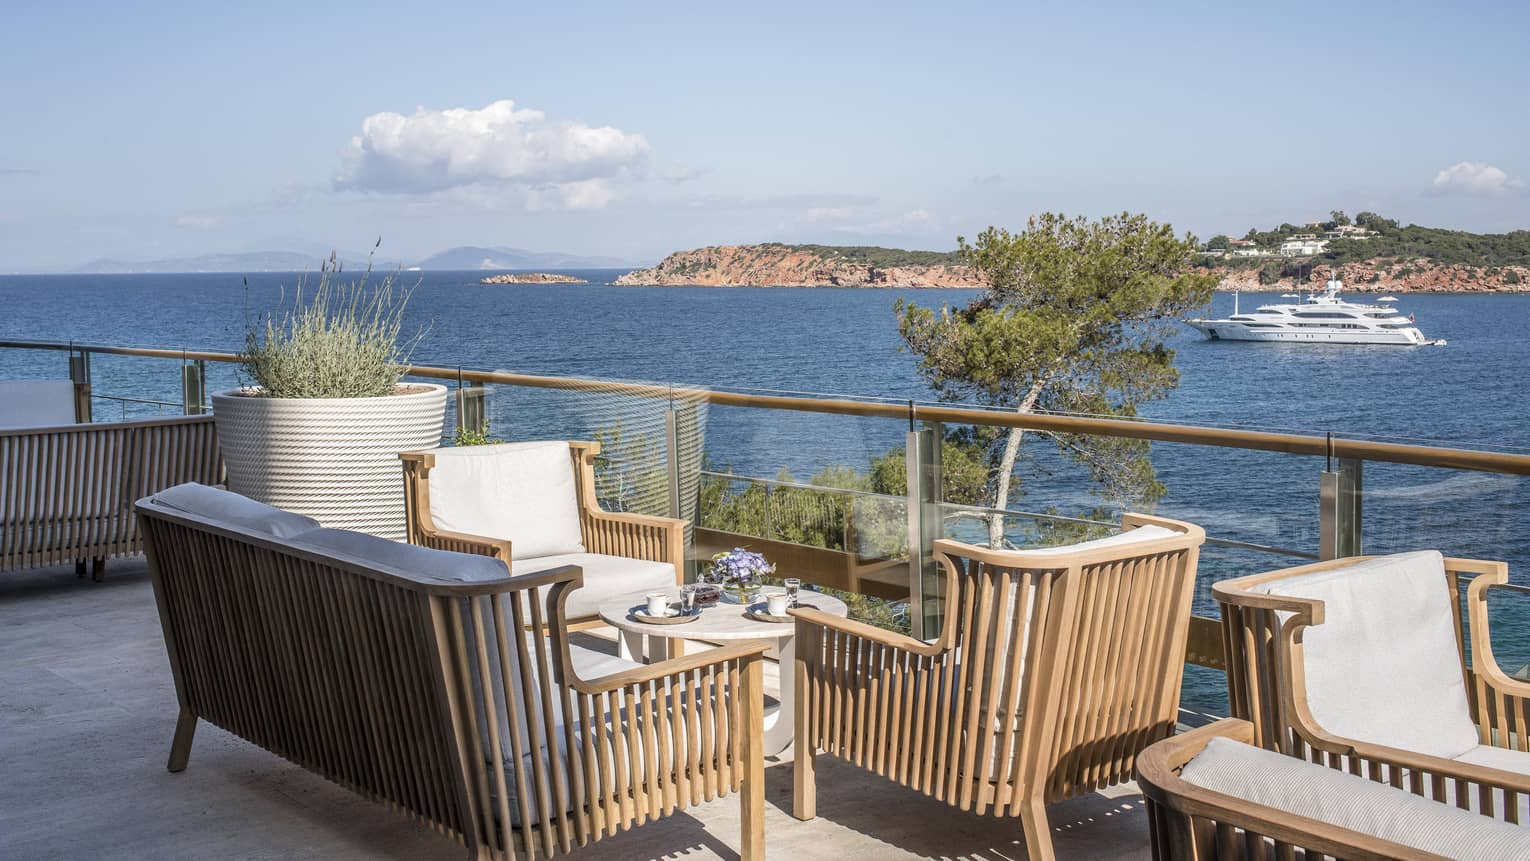 Wooden chairs with white cushions surrounding small round table by ocean with boat at Astron Terrace